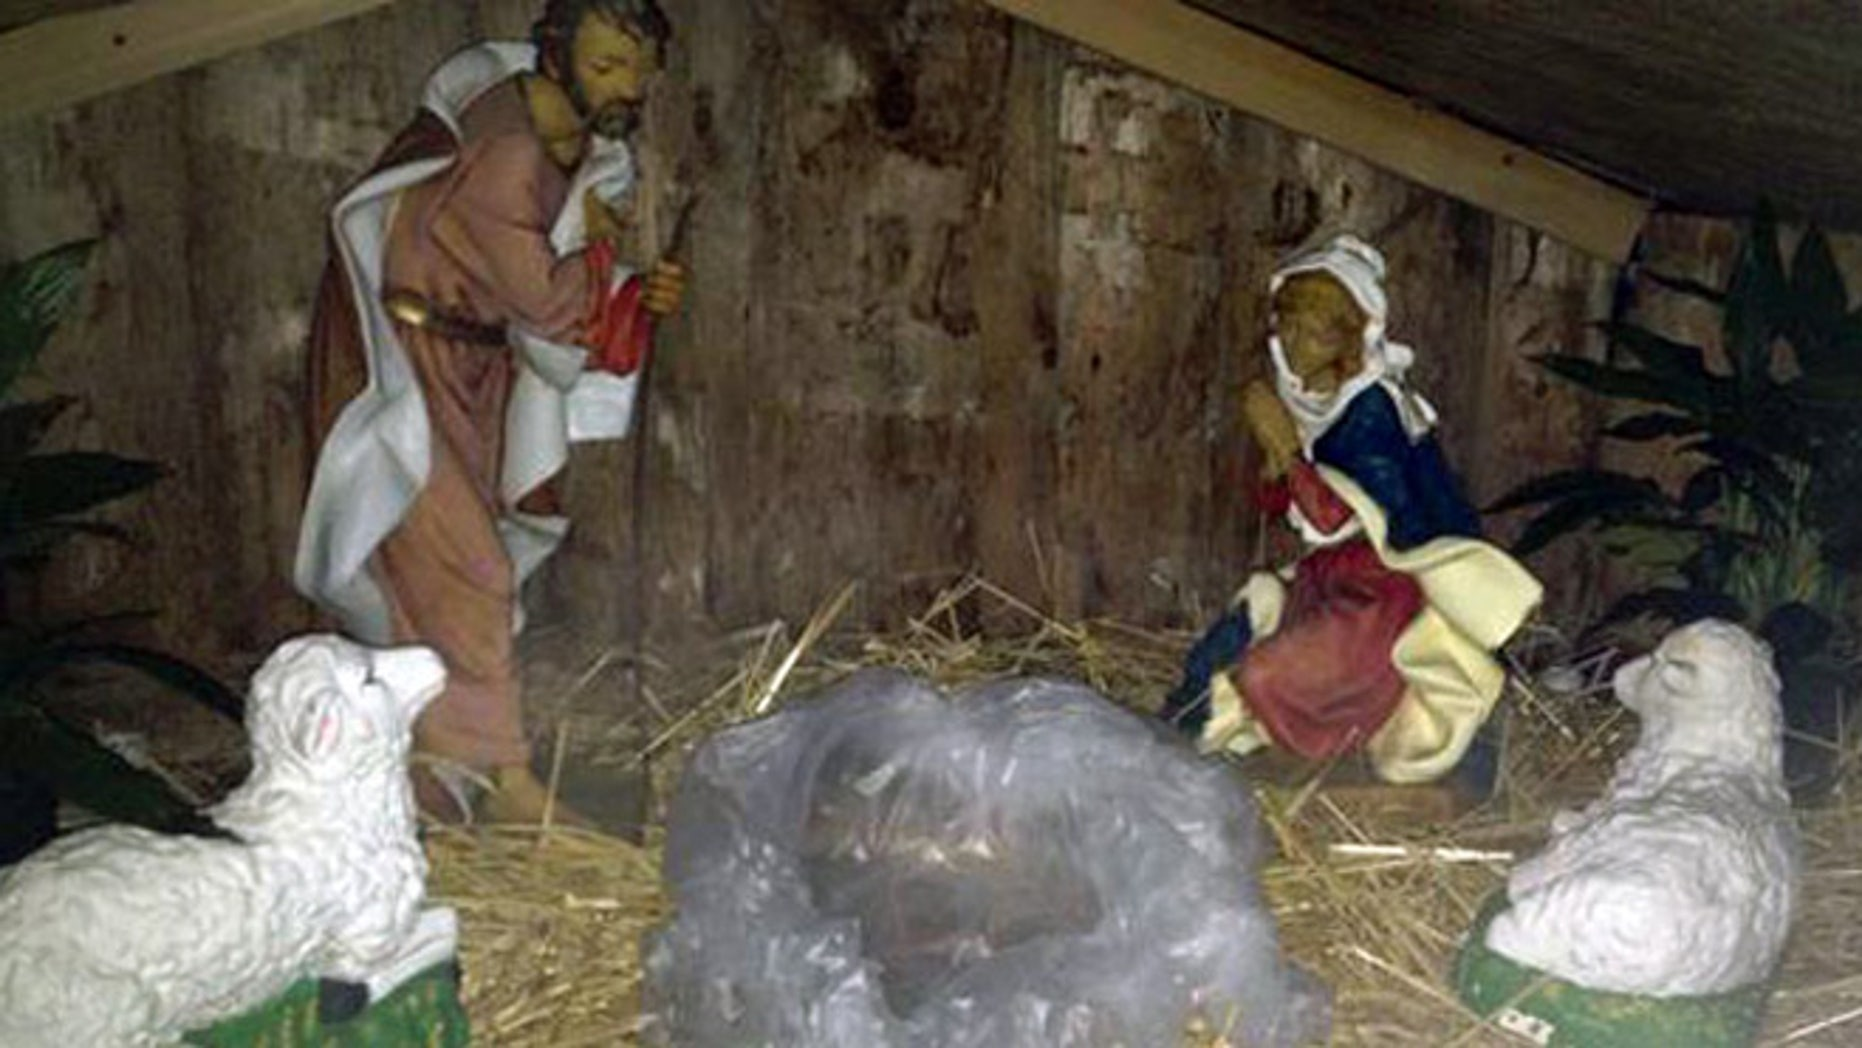 Massachusetts police say someone stole a baby Jesus statue from a Nativity scene on Christmas morning and replaced it with a severed pig's head.